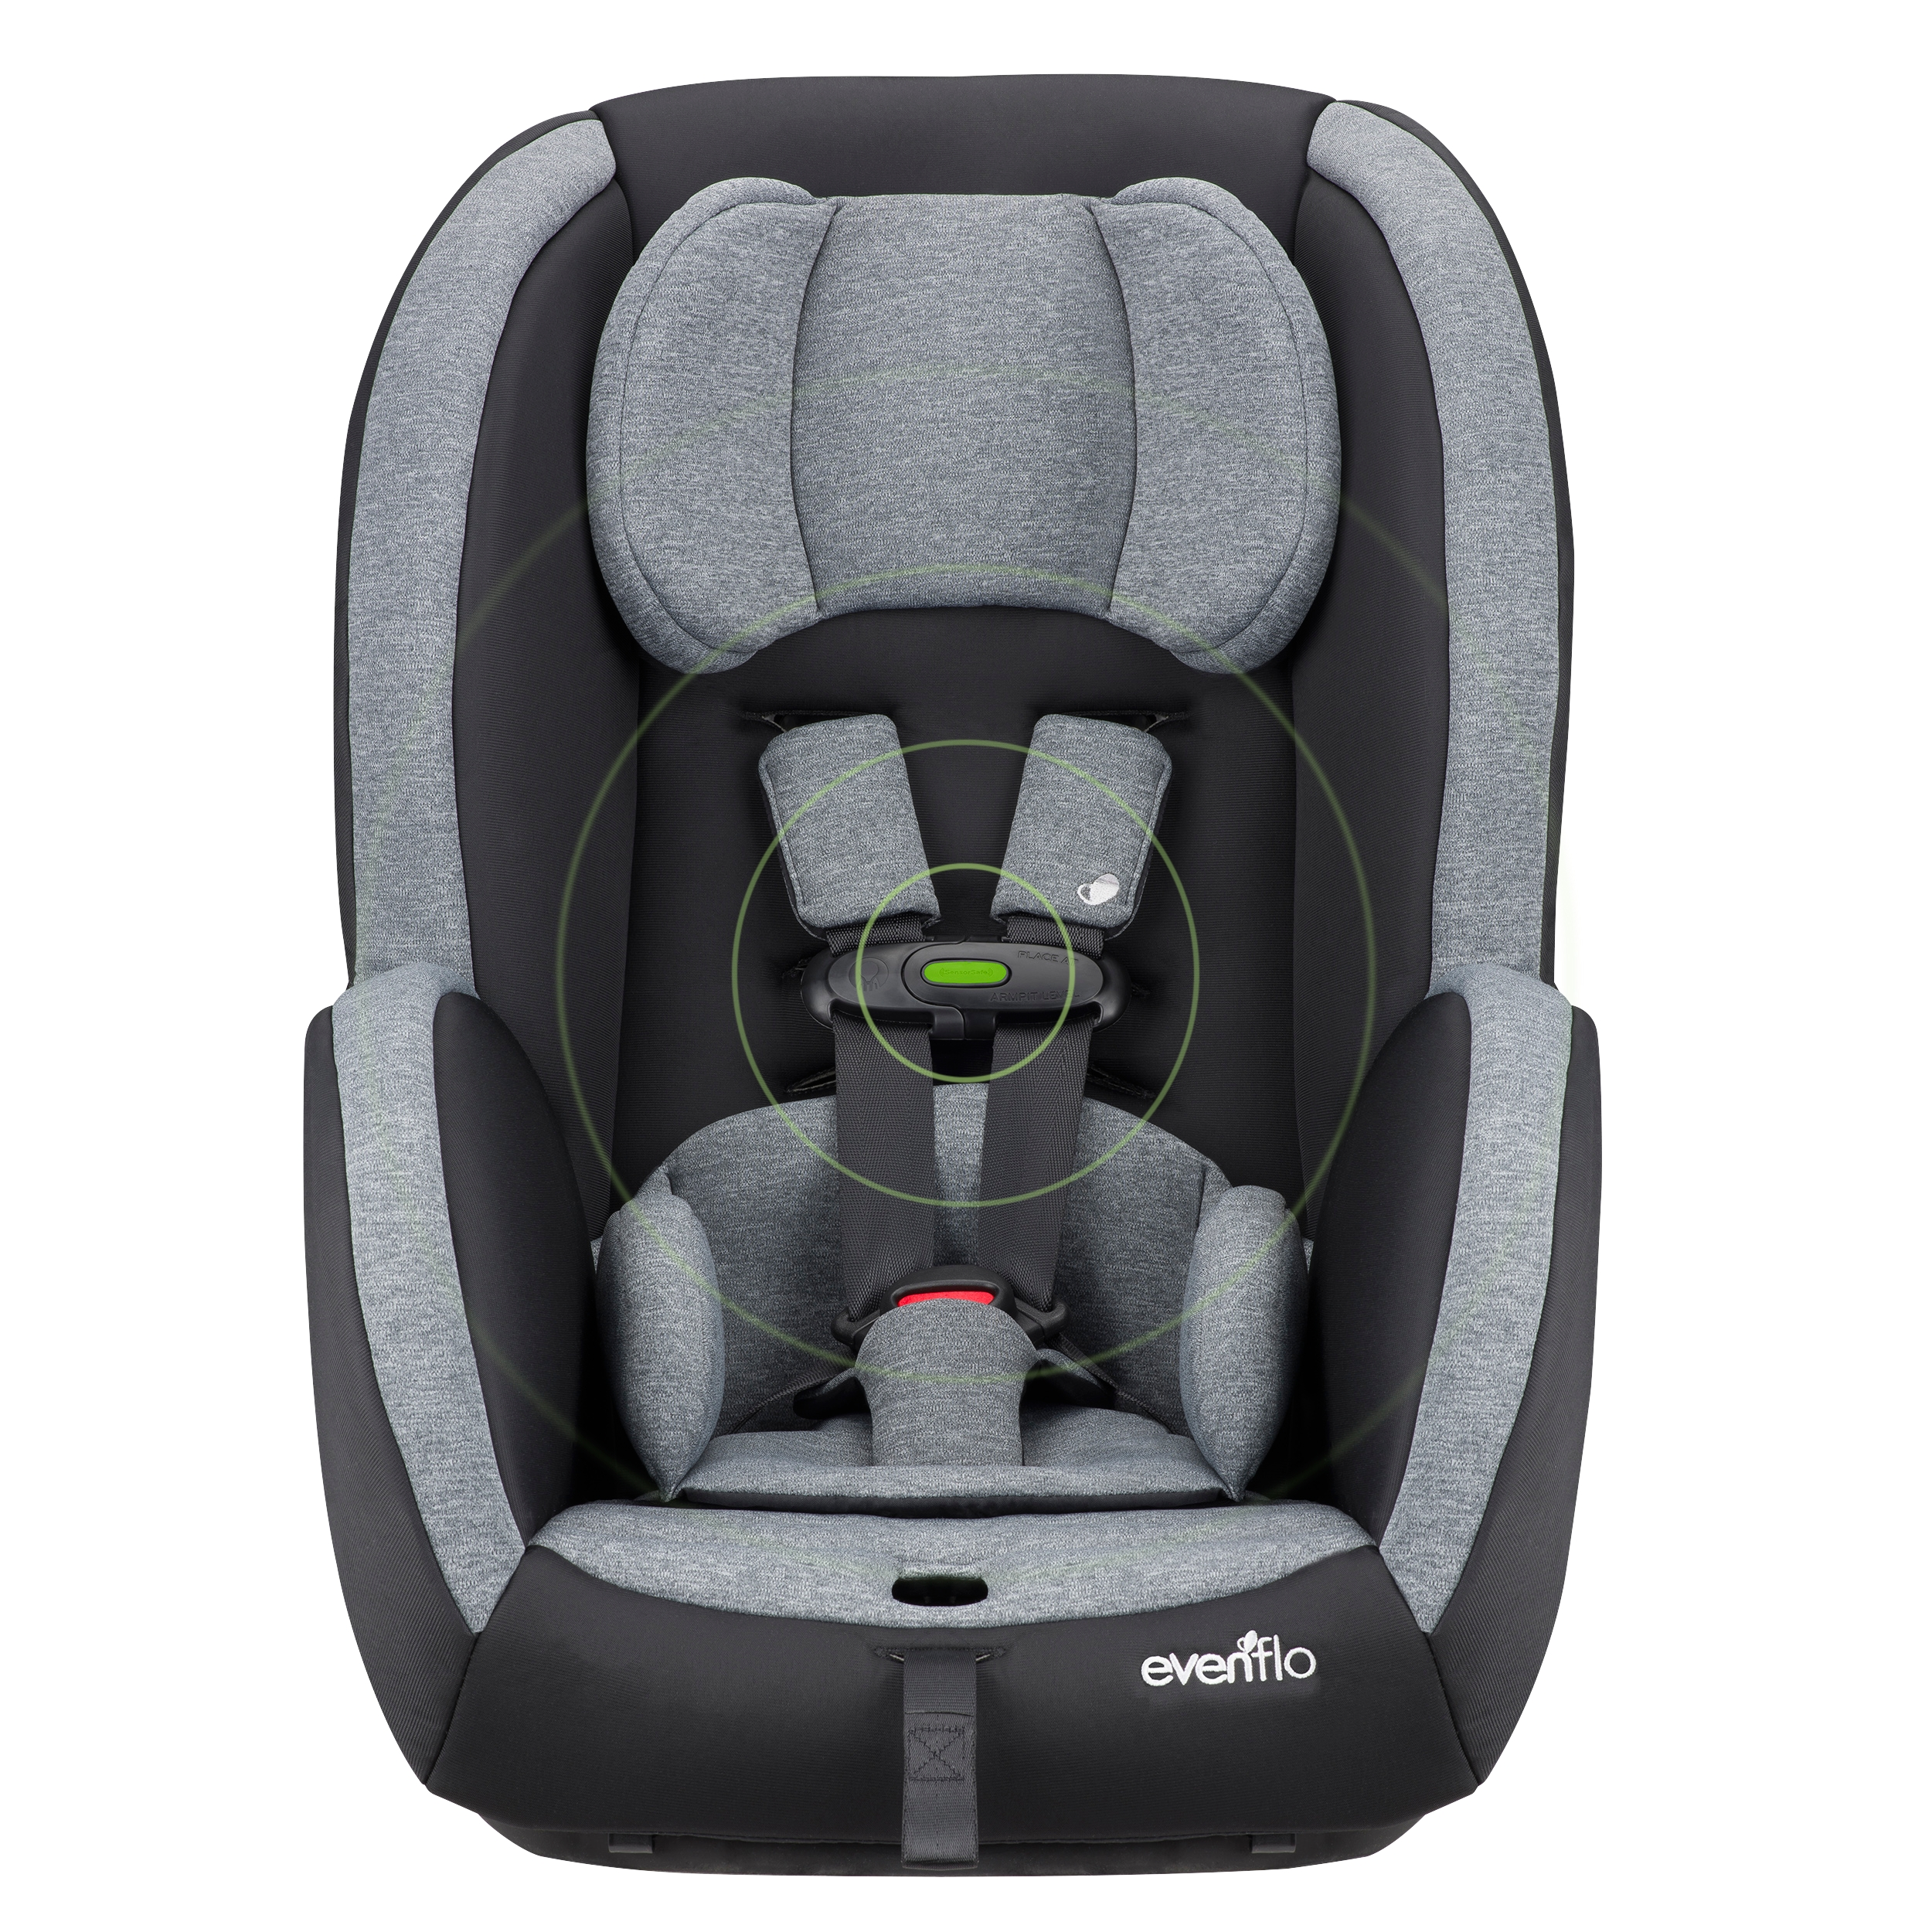 Walmart And Evenflo Buckle Up For Safety And Introduce New